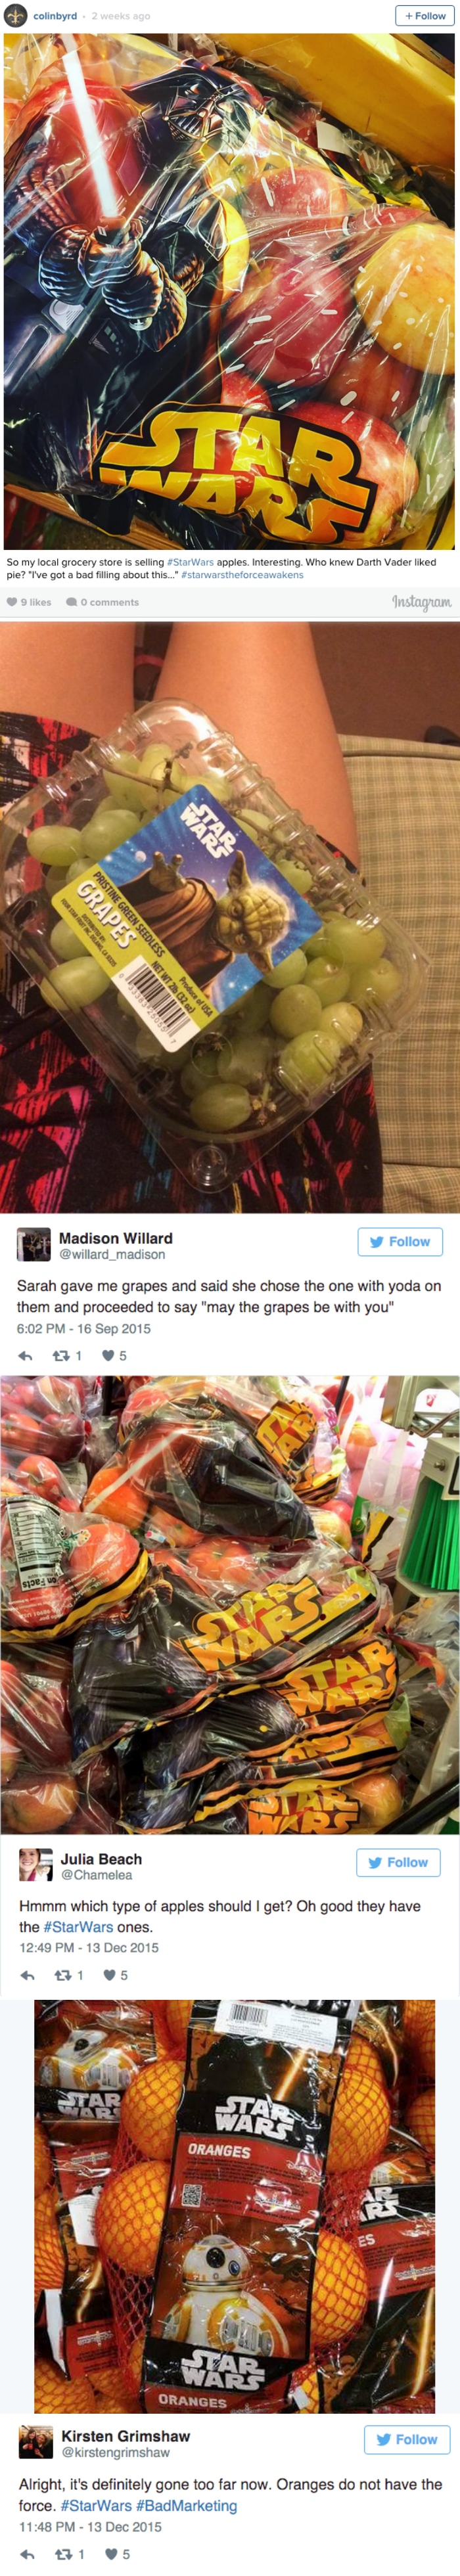 funny fail images twitter users rebel against star wars branded fruits